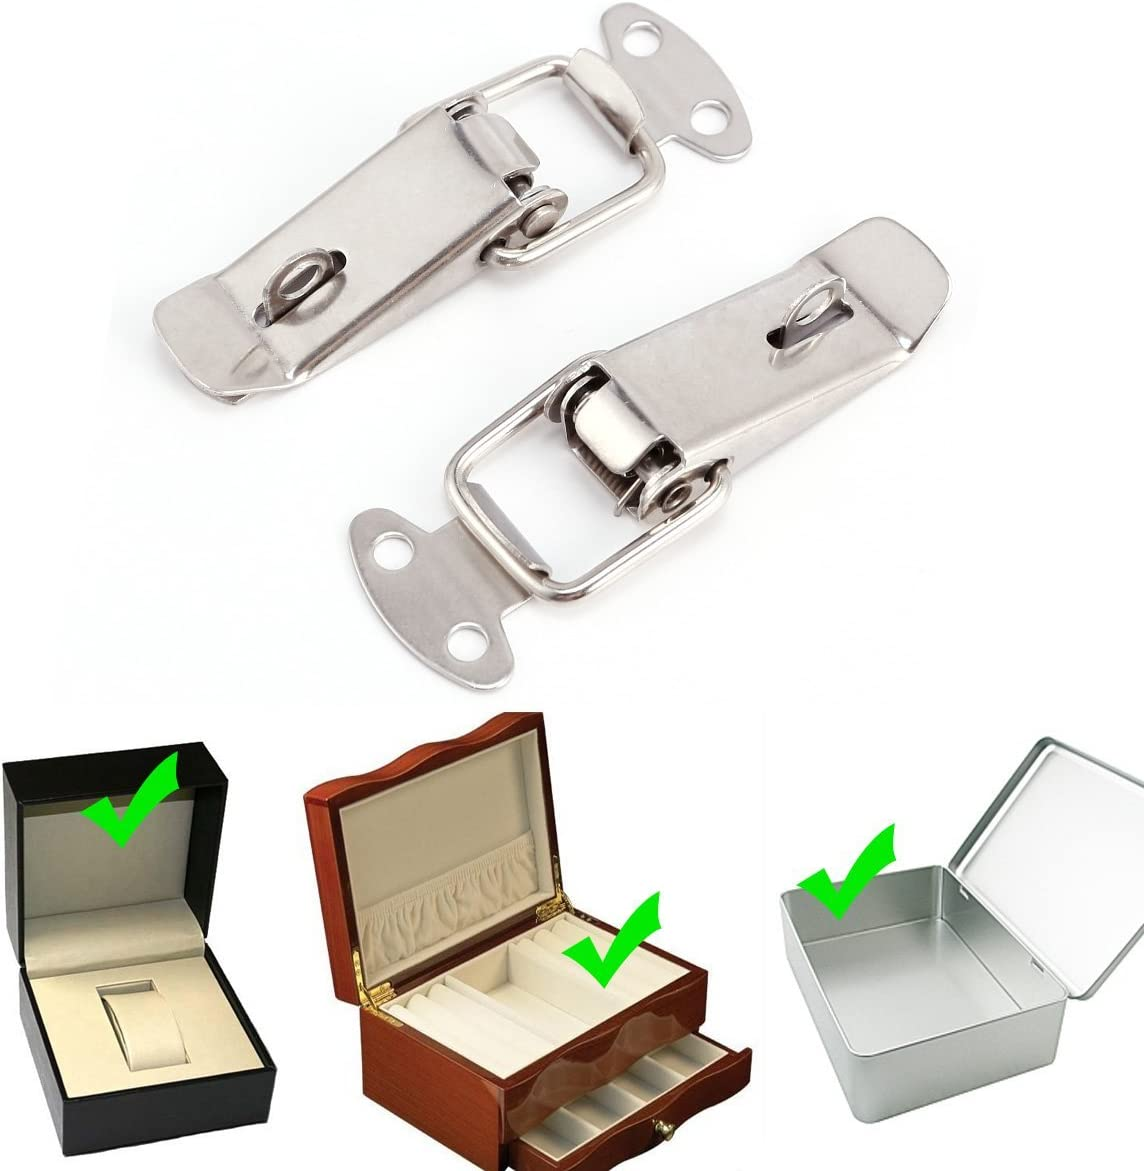 2/x KOFFER Fall Box Chest Spring Edelstahl Tone Lock Toggle Latch Fang Schlie/ße